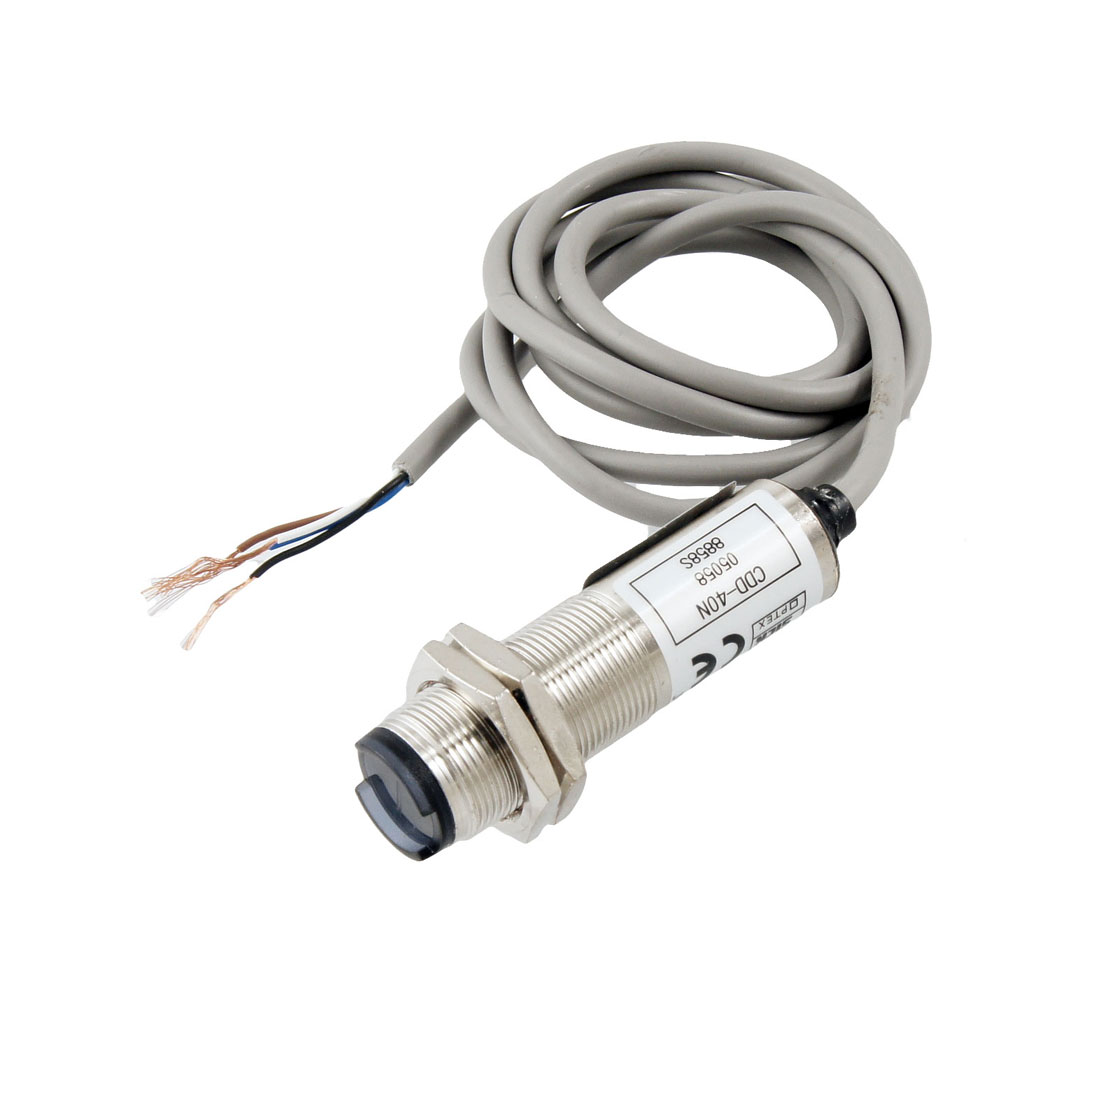 CDD-40N Cylindrical Type Photoelectric Sensor Switch DC 12-24V